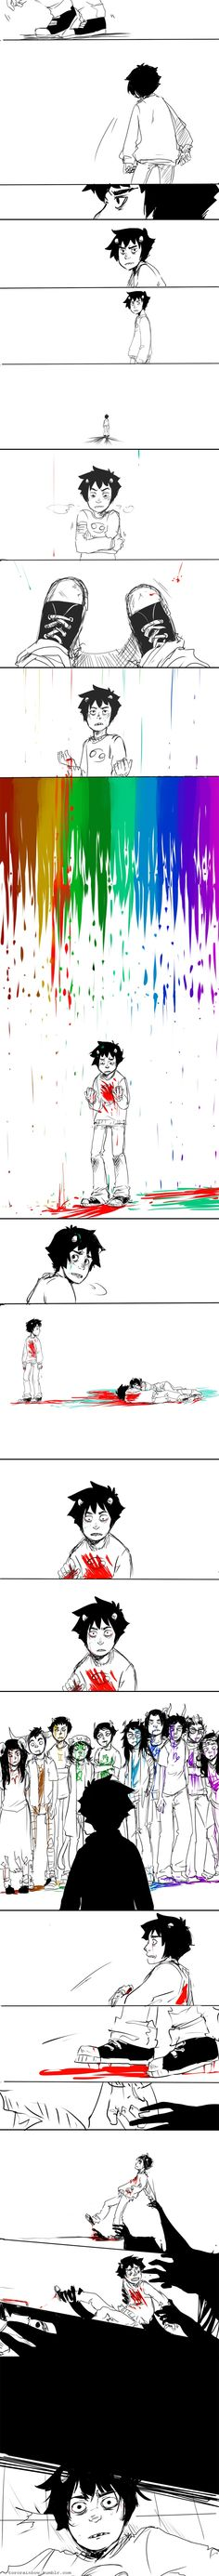 Karkat, please. Just let me give you a hug. Karkat reminds me of Nico from the Percy Jackson series, he has so many demons.